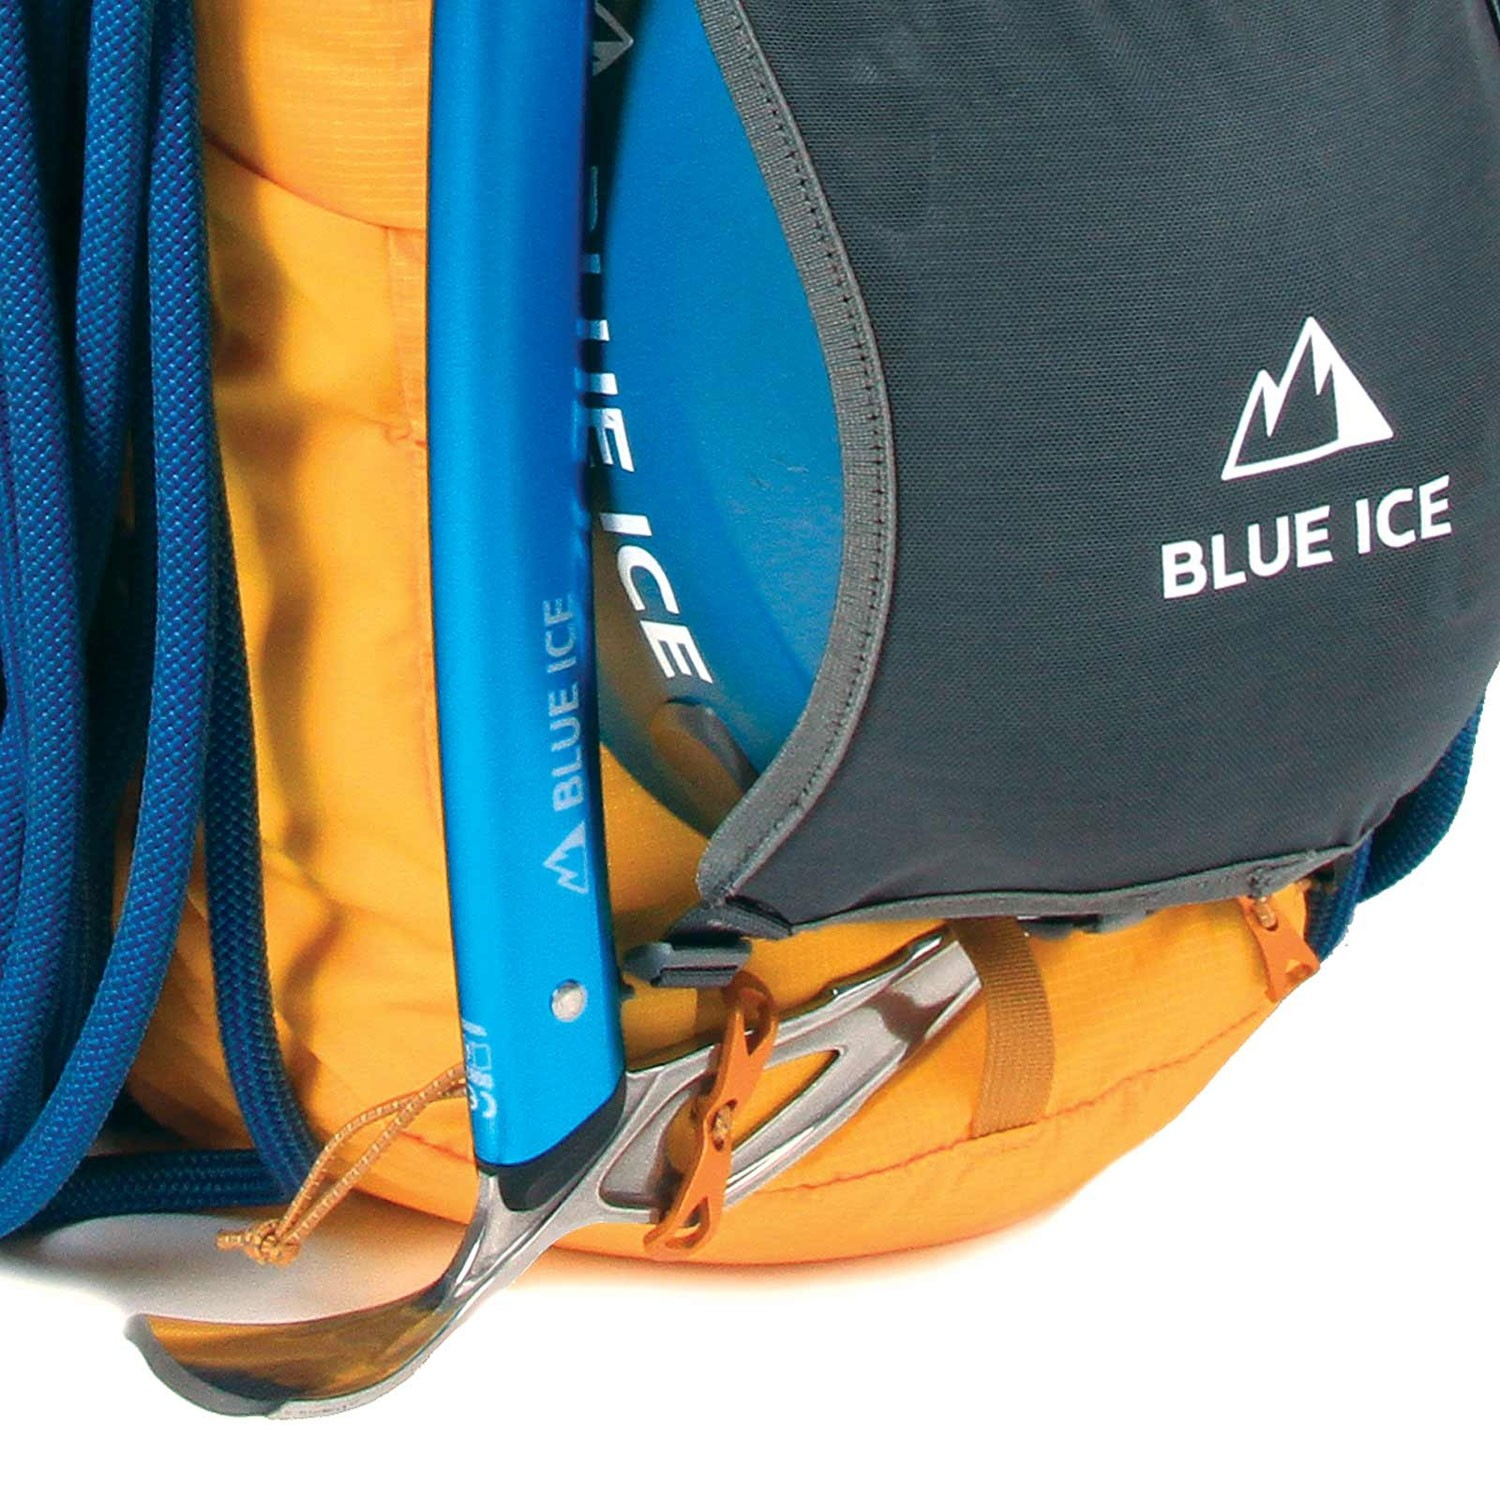 Blue Ice Dragonfly 25L Rucksack - Spectra Yellow - Ice axe buckle